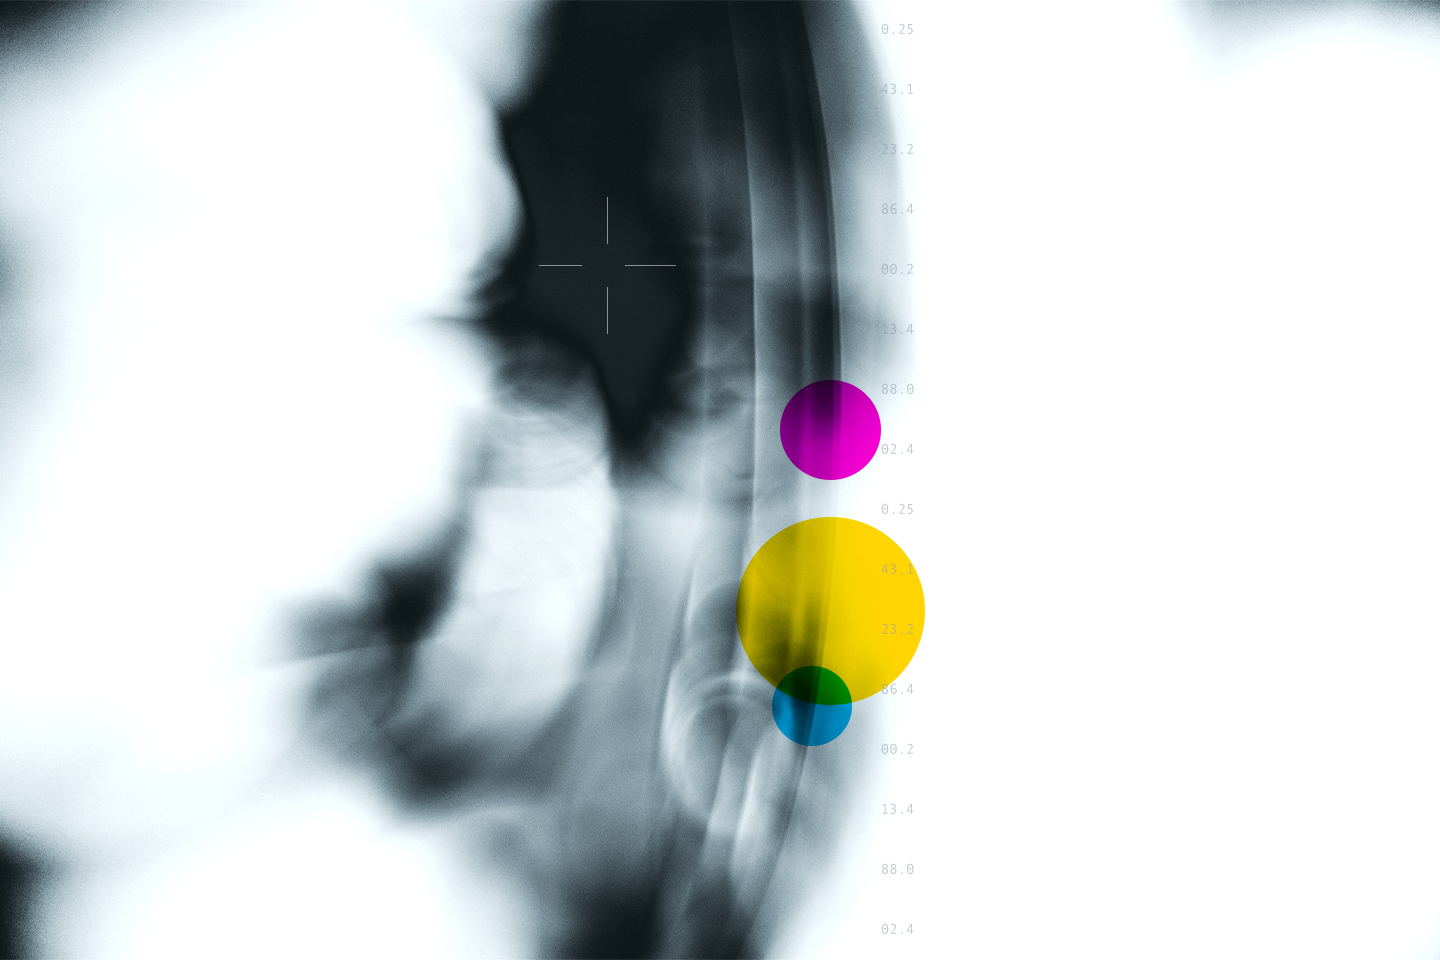 An abstract image that looks like an x-ray with cmyk color dots overlaying it.